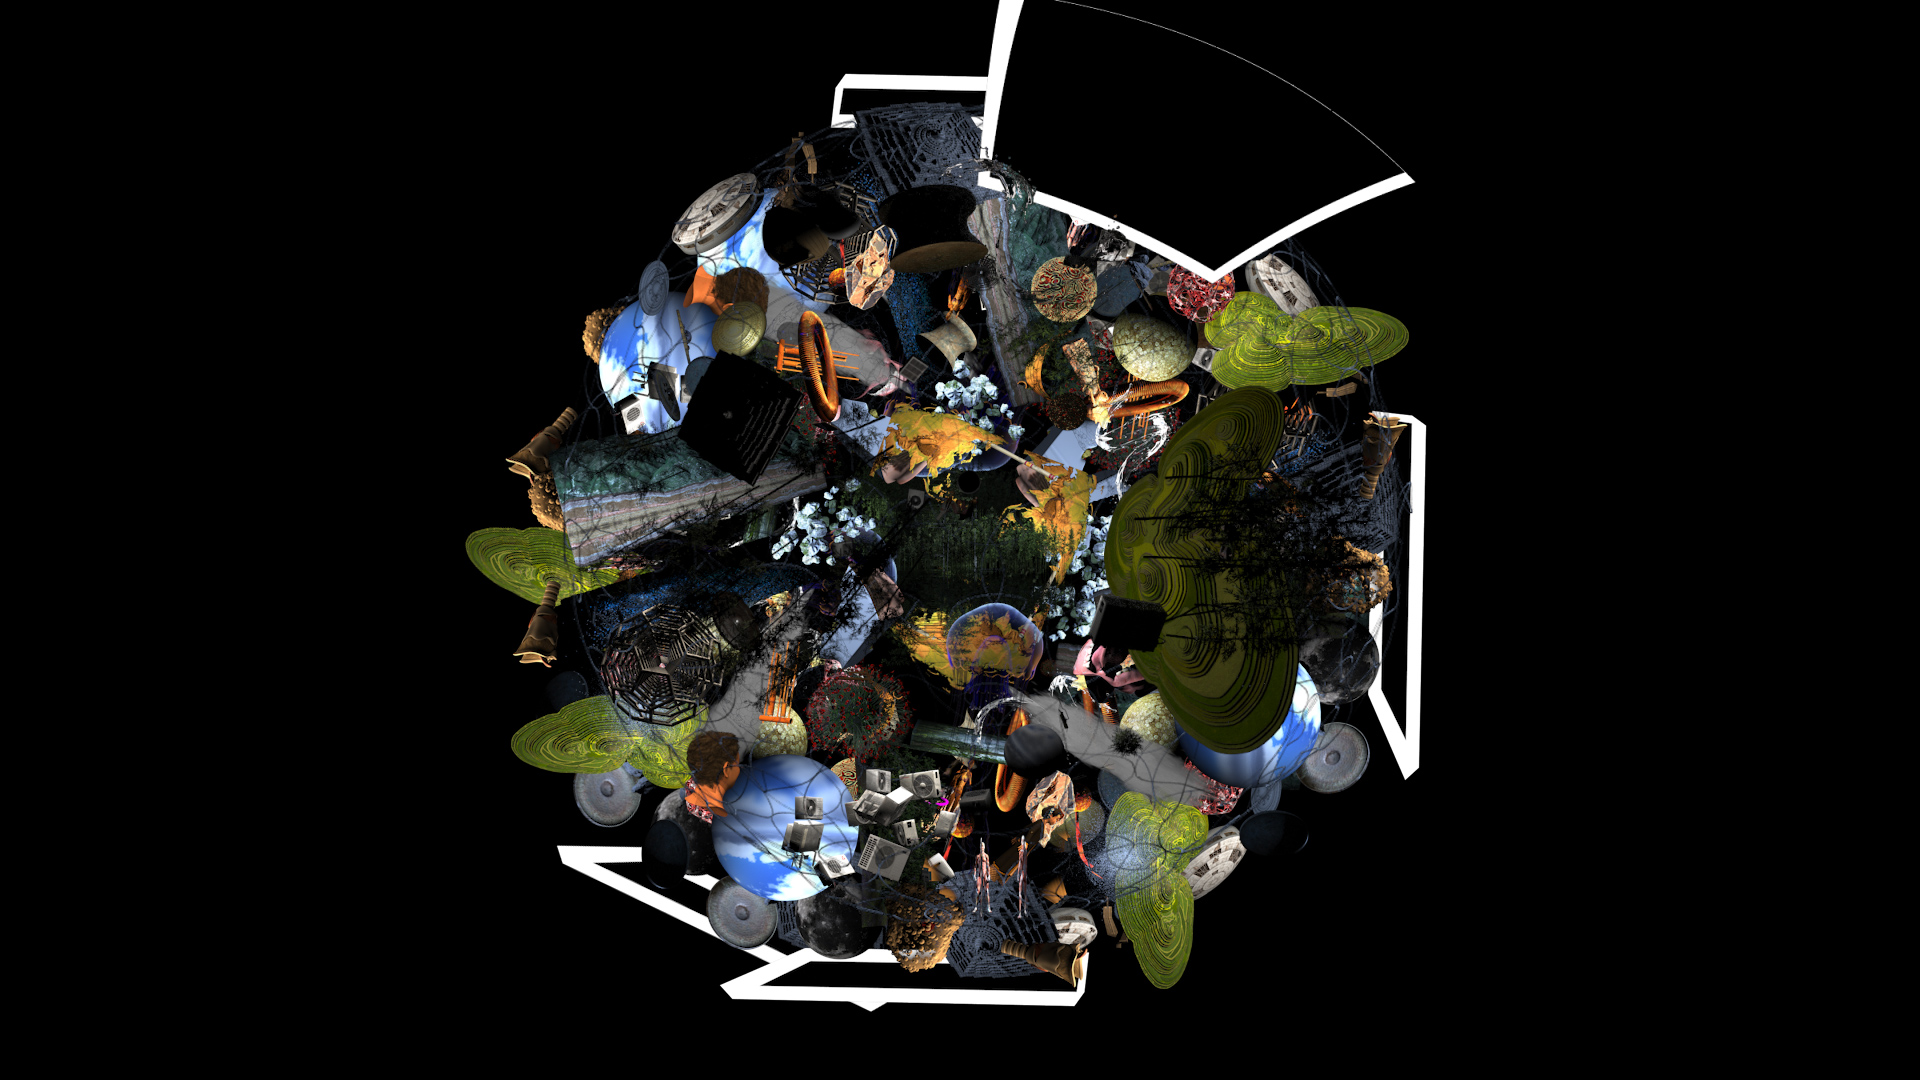 R for Resonance, Installation with VR Video 360 degrees, single channel video, 6 channel sound_2